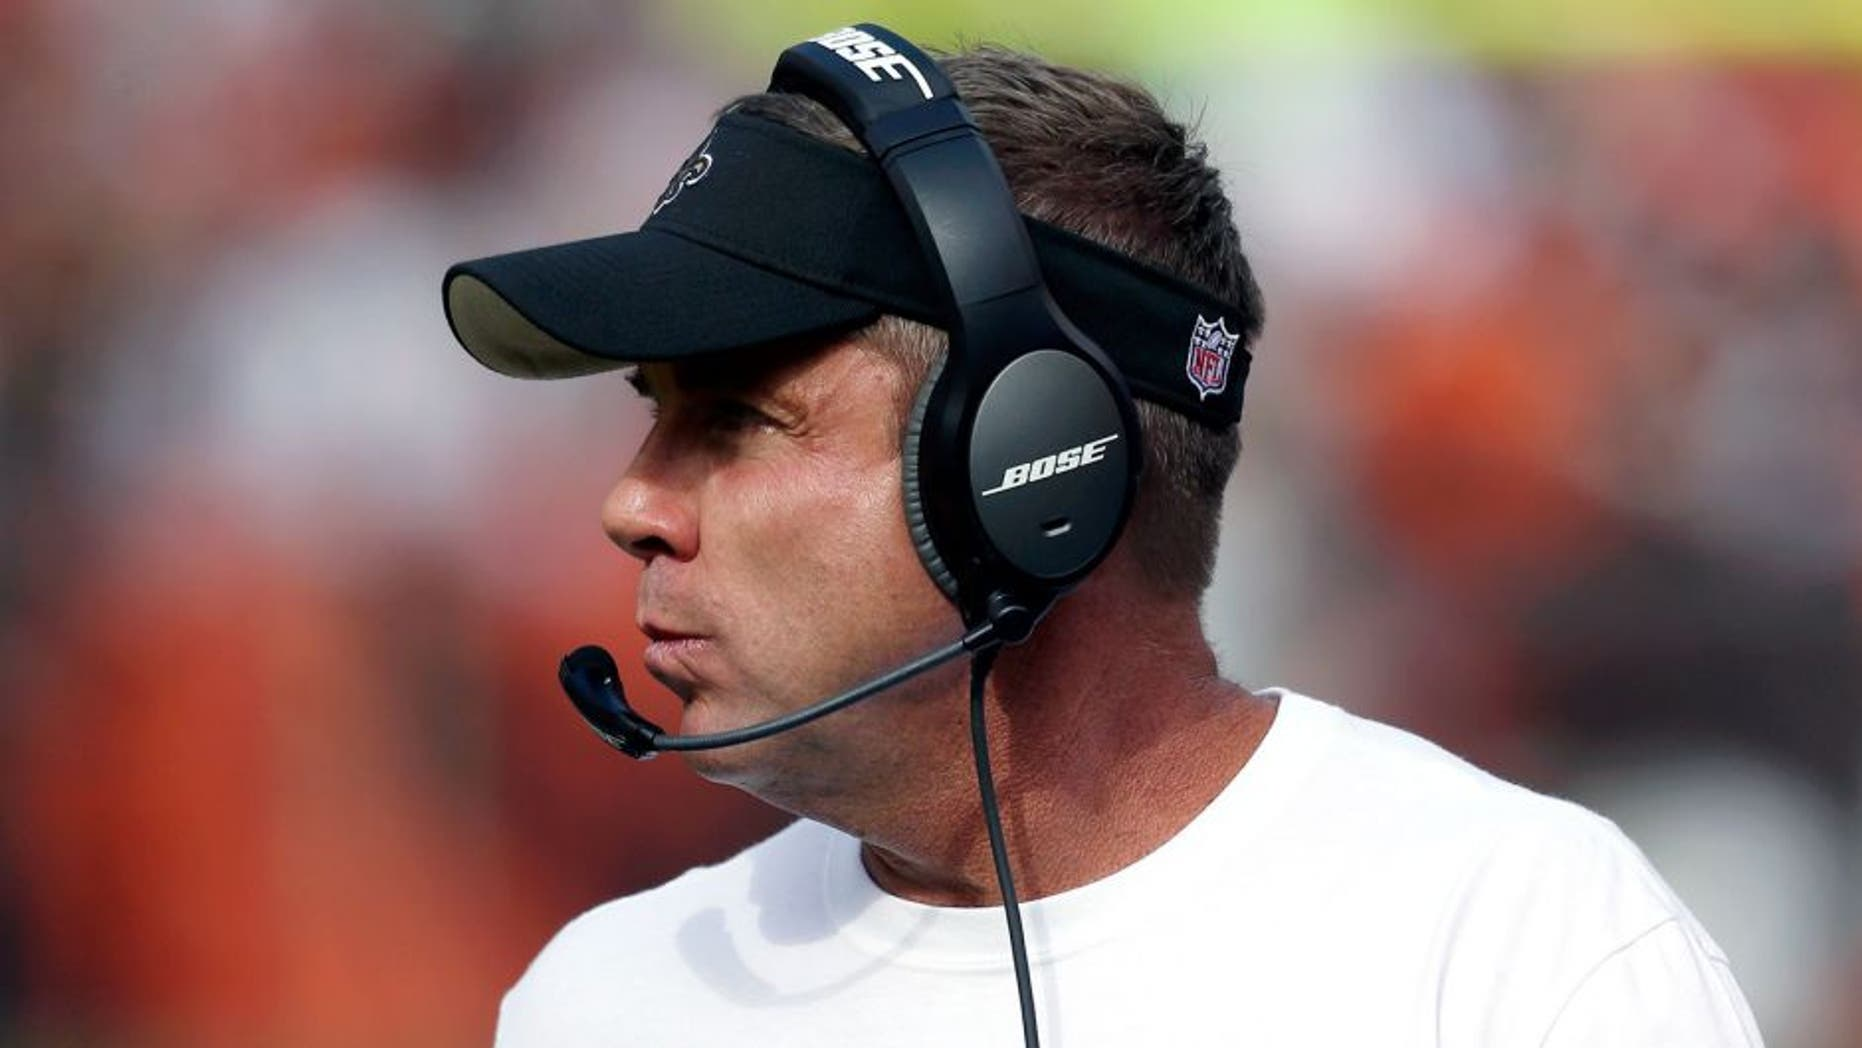 Sep 14, 2014; Cleveland, OH, USA; New Orleans Saints head coach Sean Payton against the Cleveland Browns during the fourth quarter at FirstEnergy Stadium. The Browns won 26-24. Mandatory Credit: Ron Schwane-USA TODAY Sports